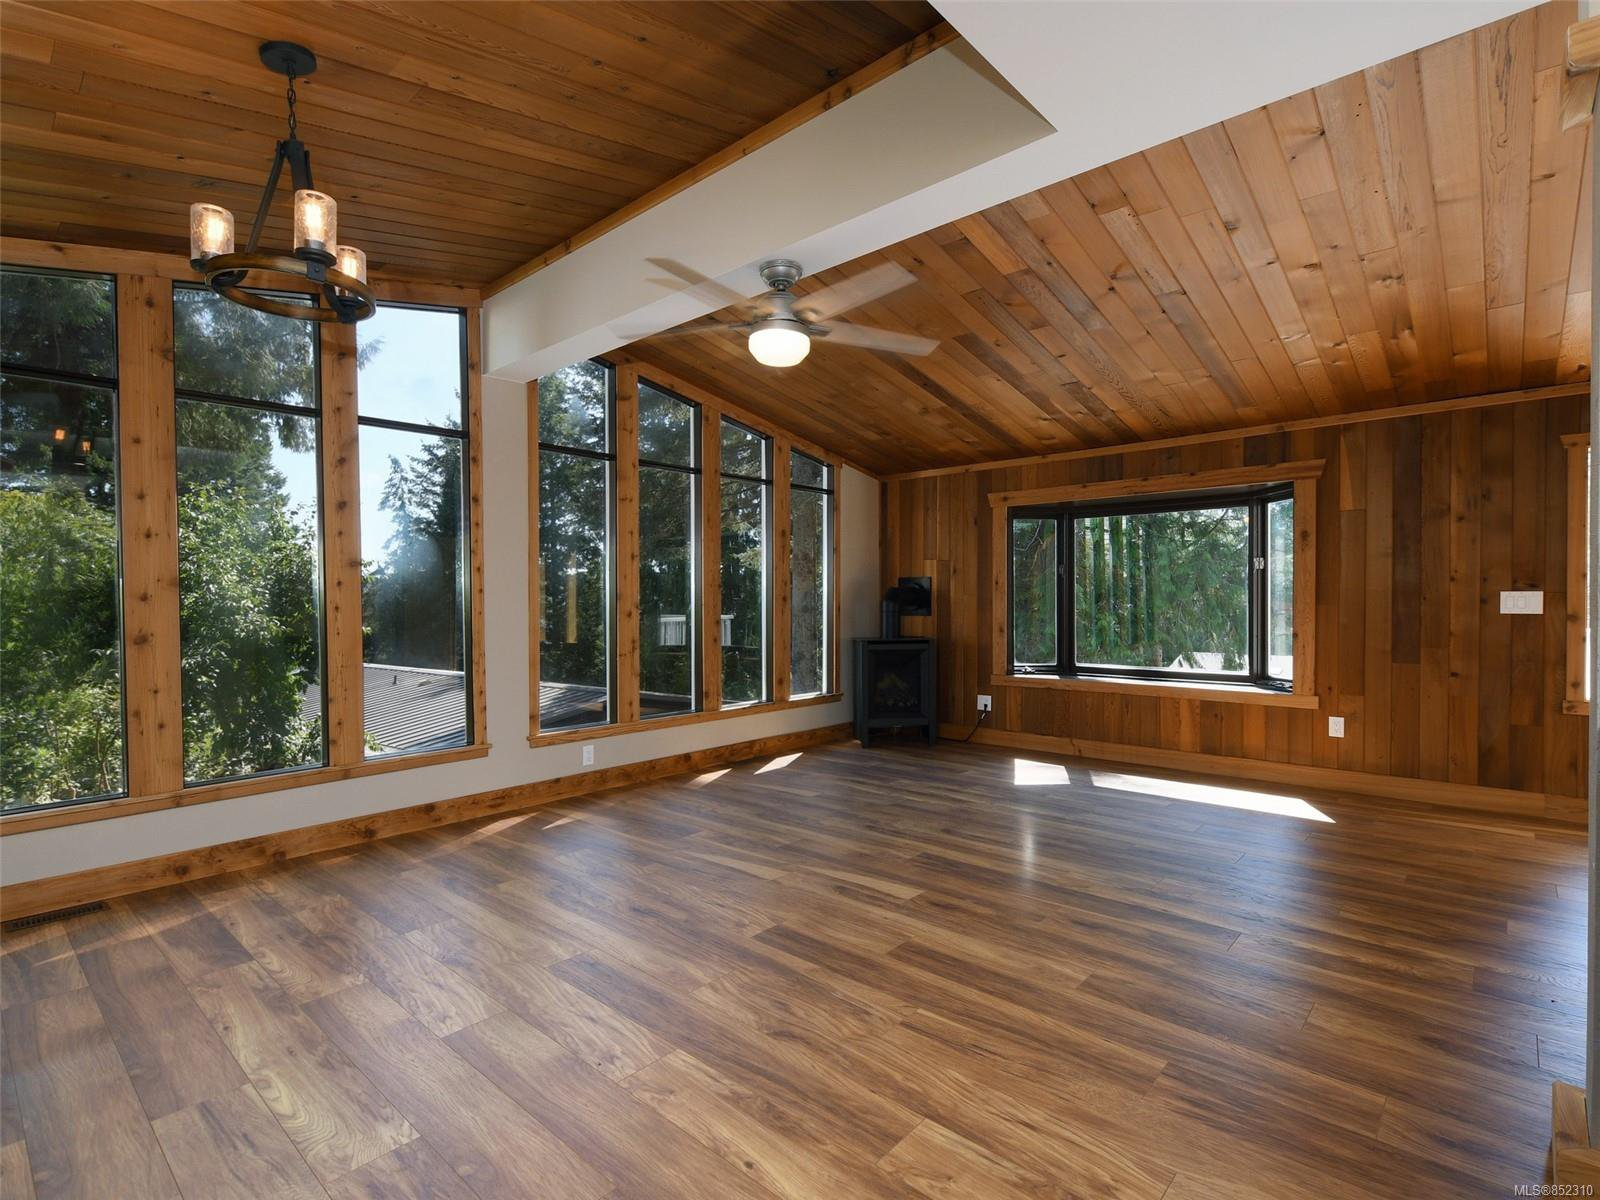 Photo 4: Photos: 94 5838 Blythwood Rd in : Sk Saseenos Manufactured Home for sale (Sooke)  : MLS®# 852310